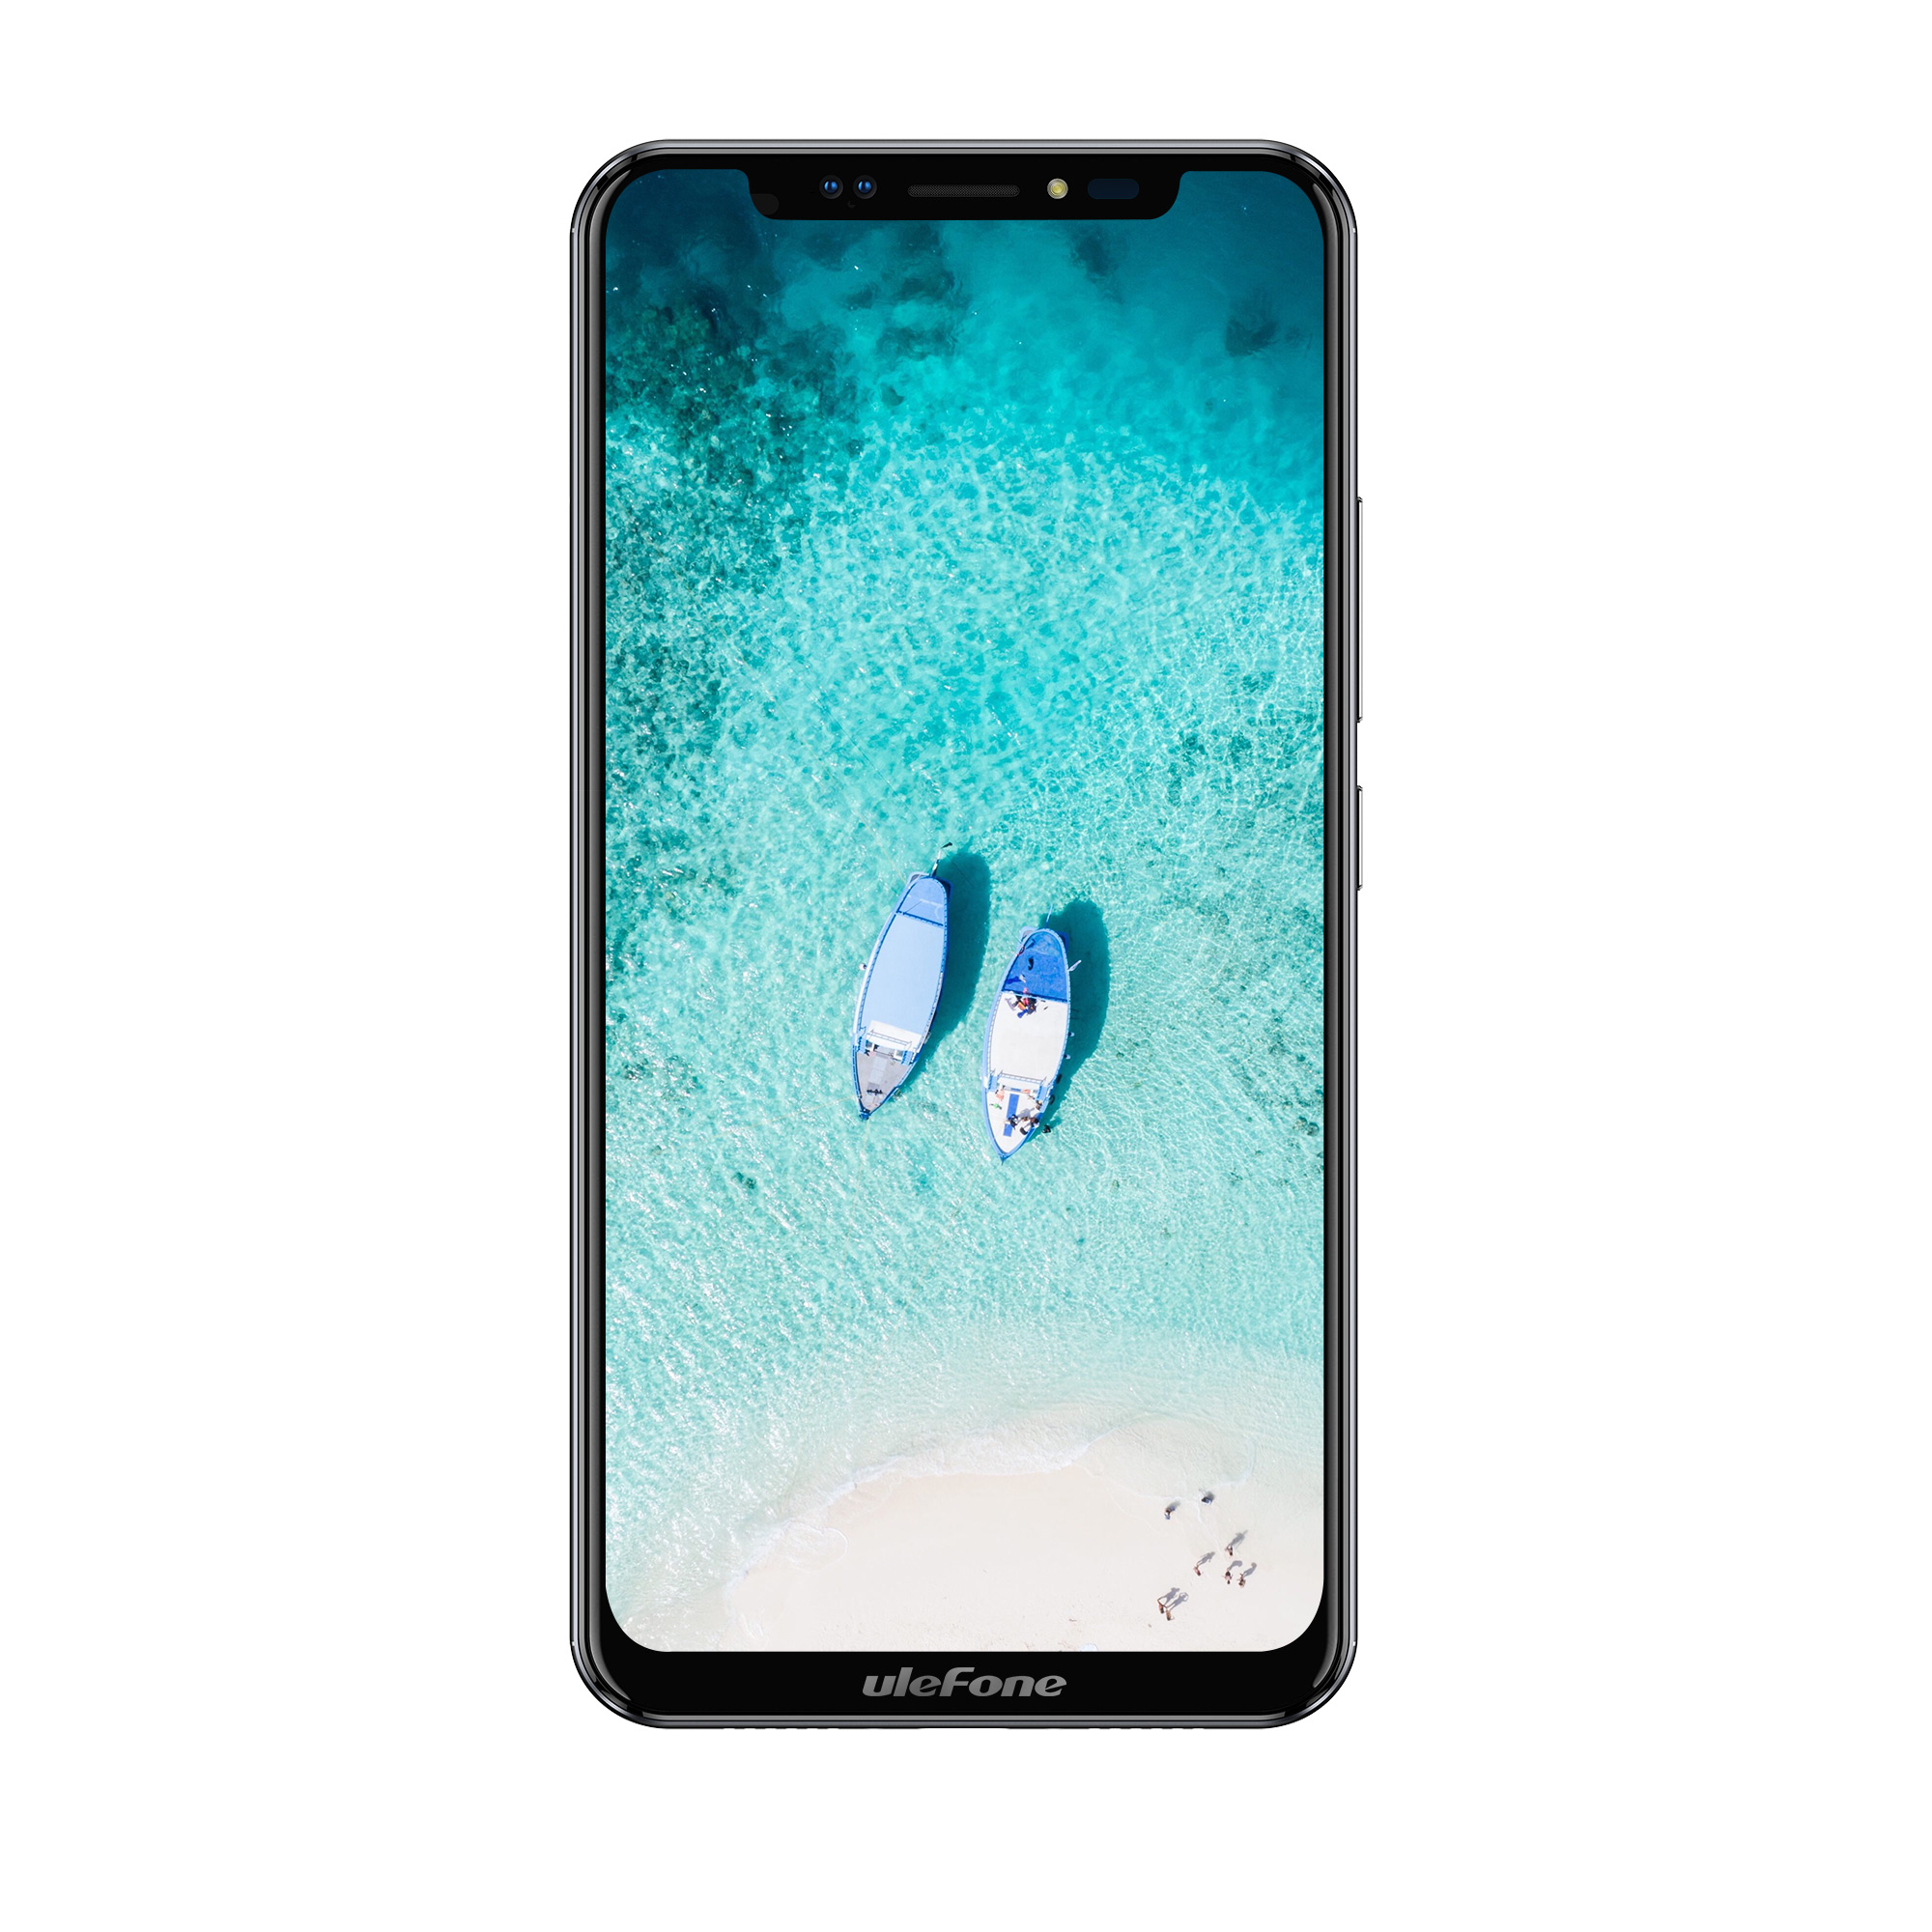 Ulefone nuovo dispositivo identico ad Iphone X